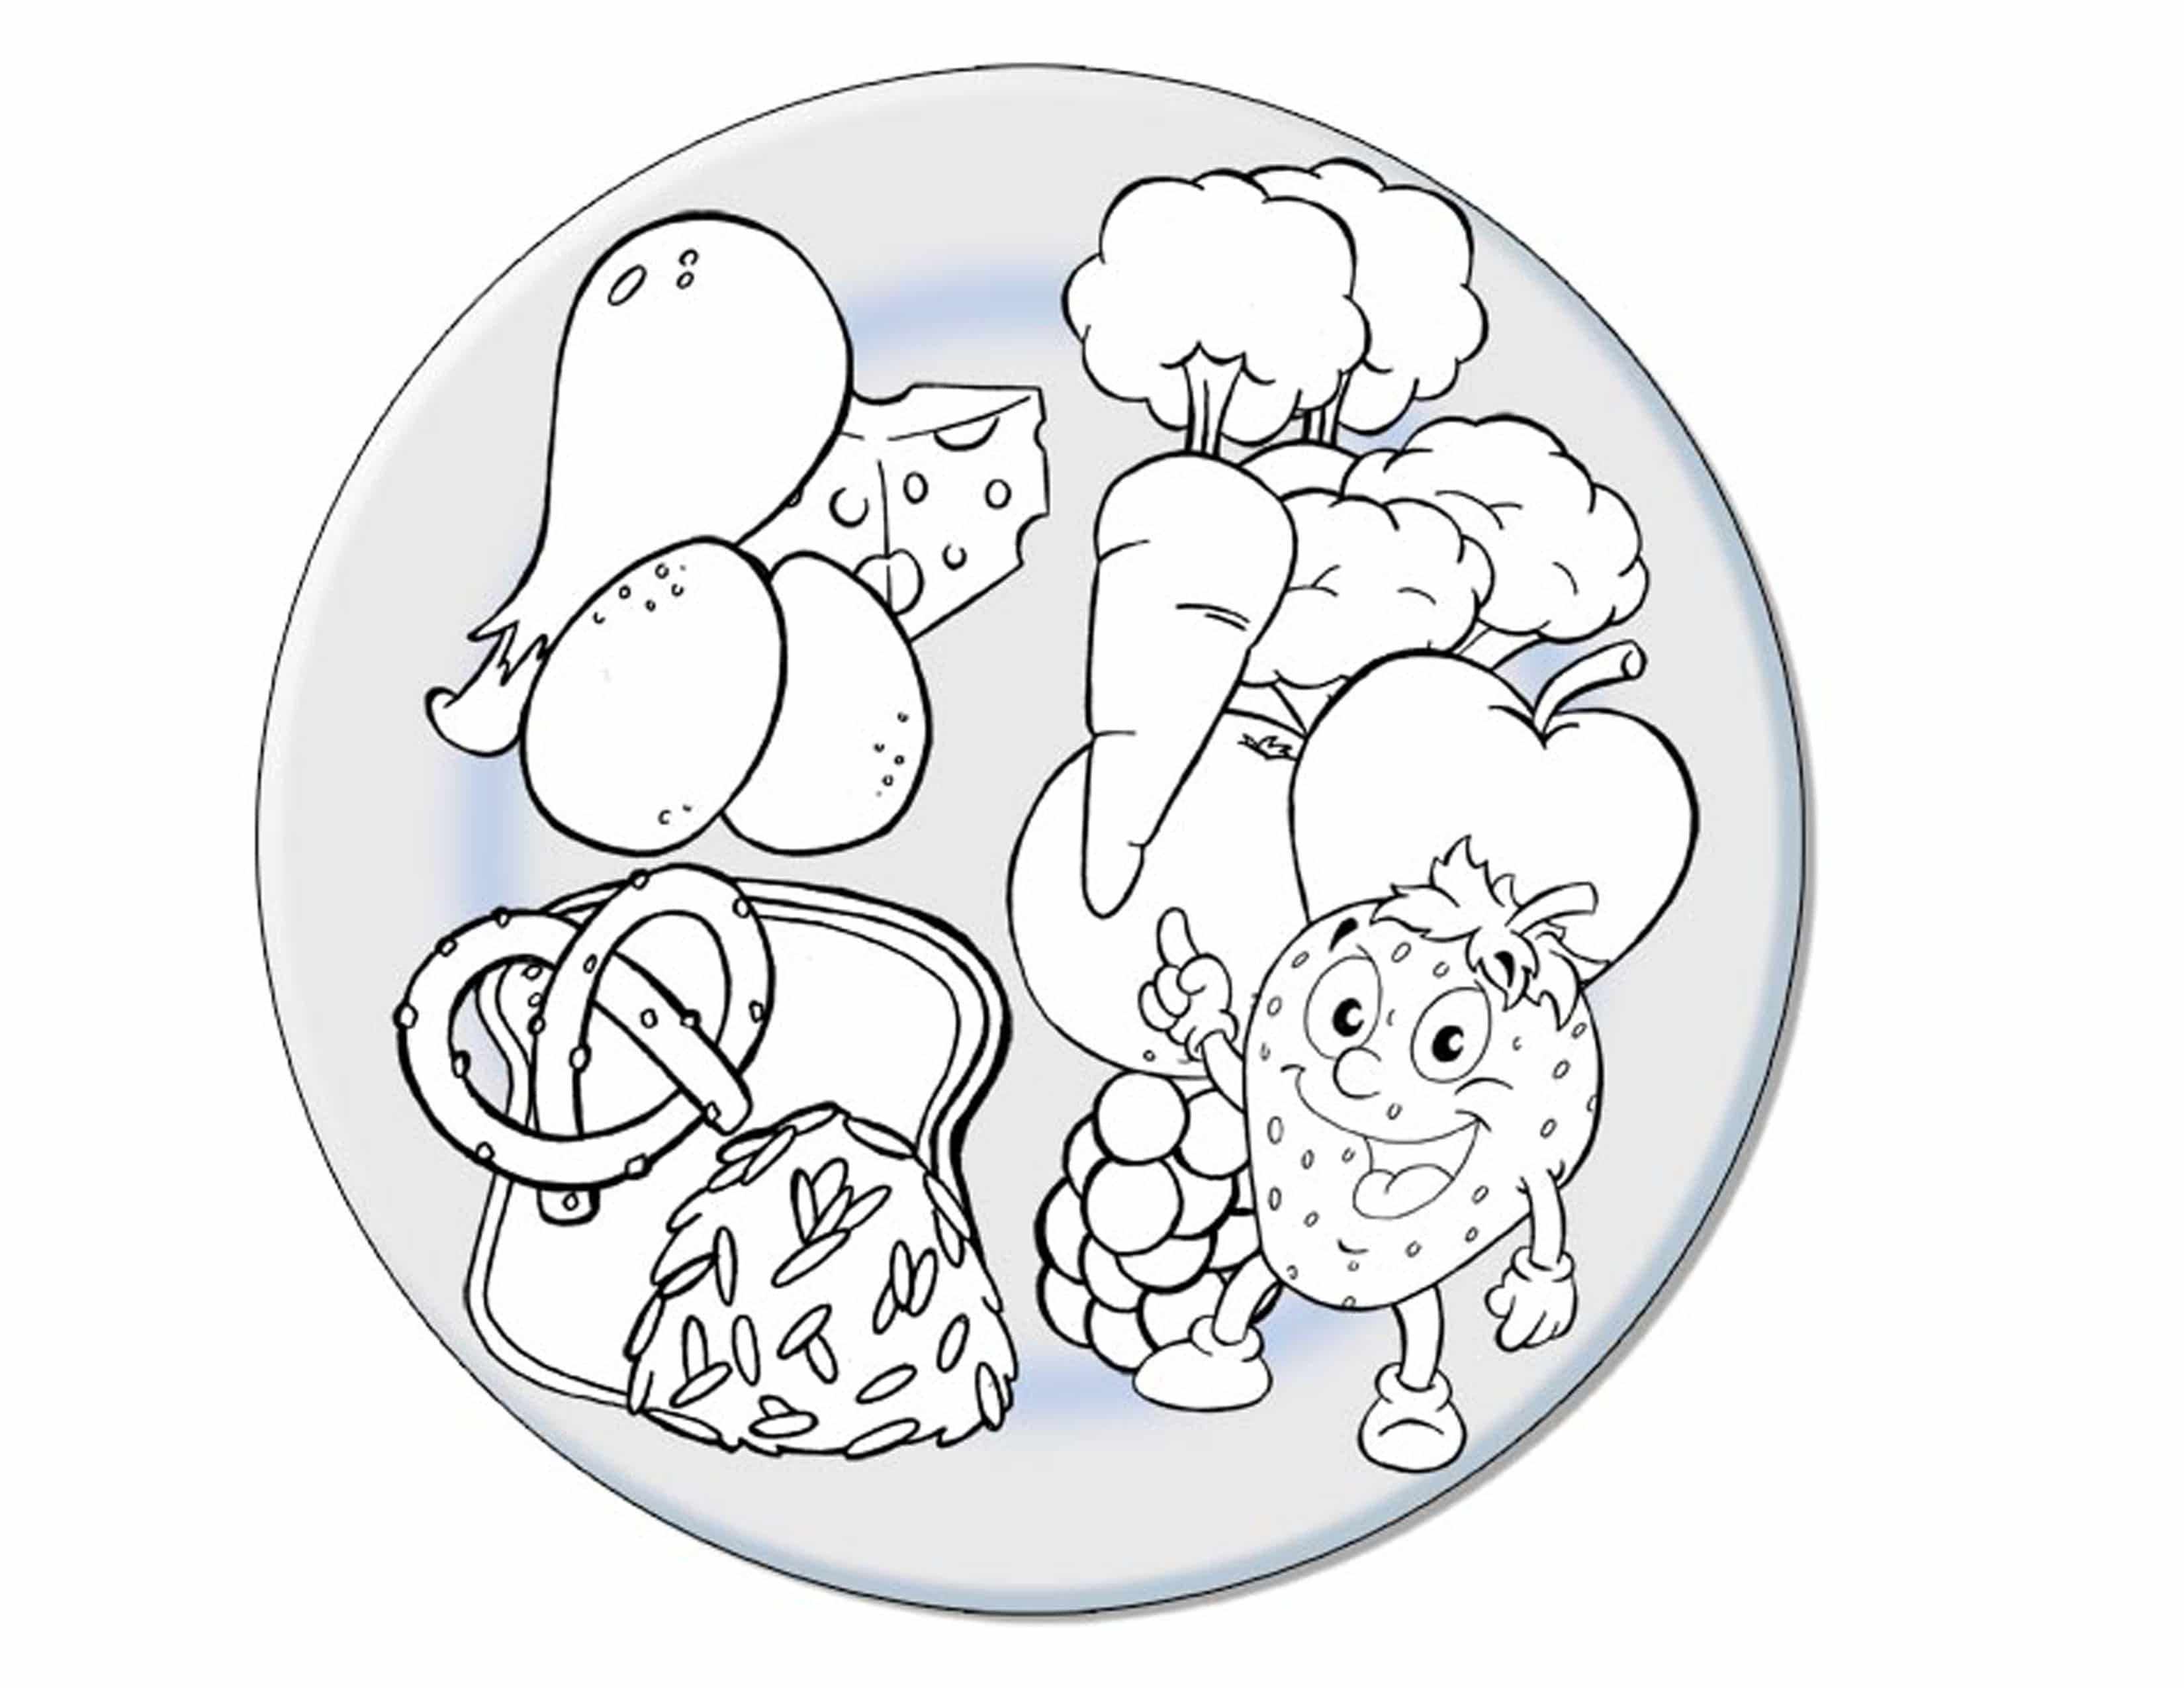 coloring page nutrition plate